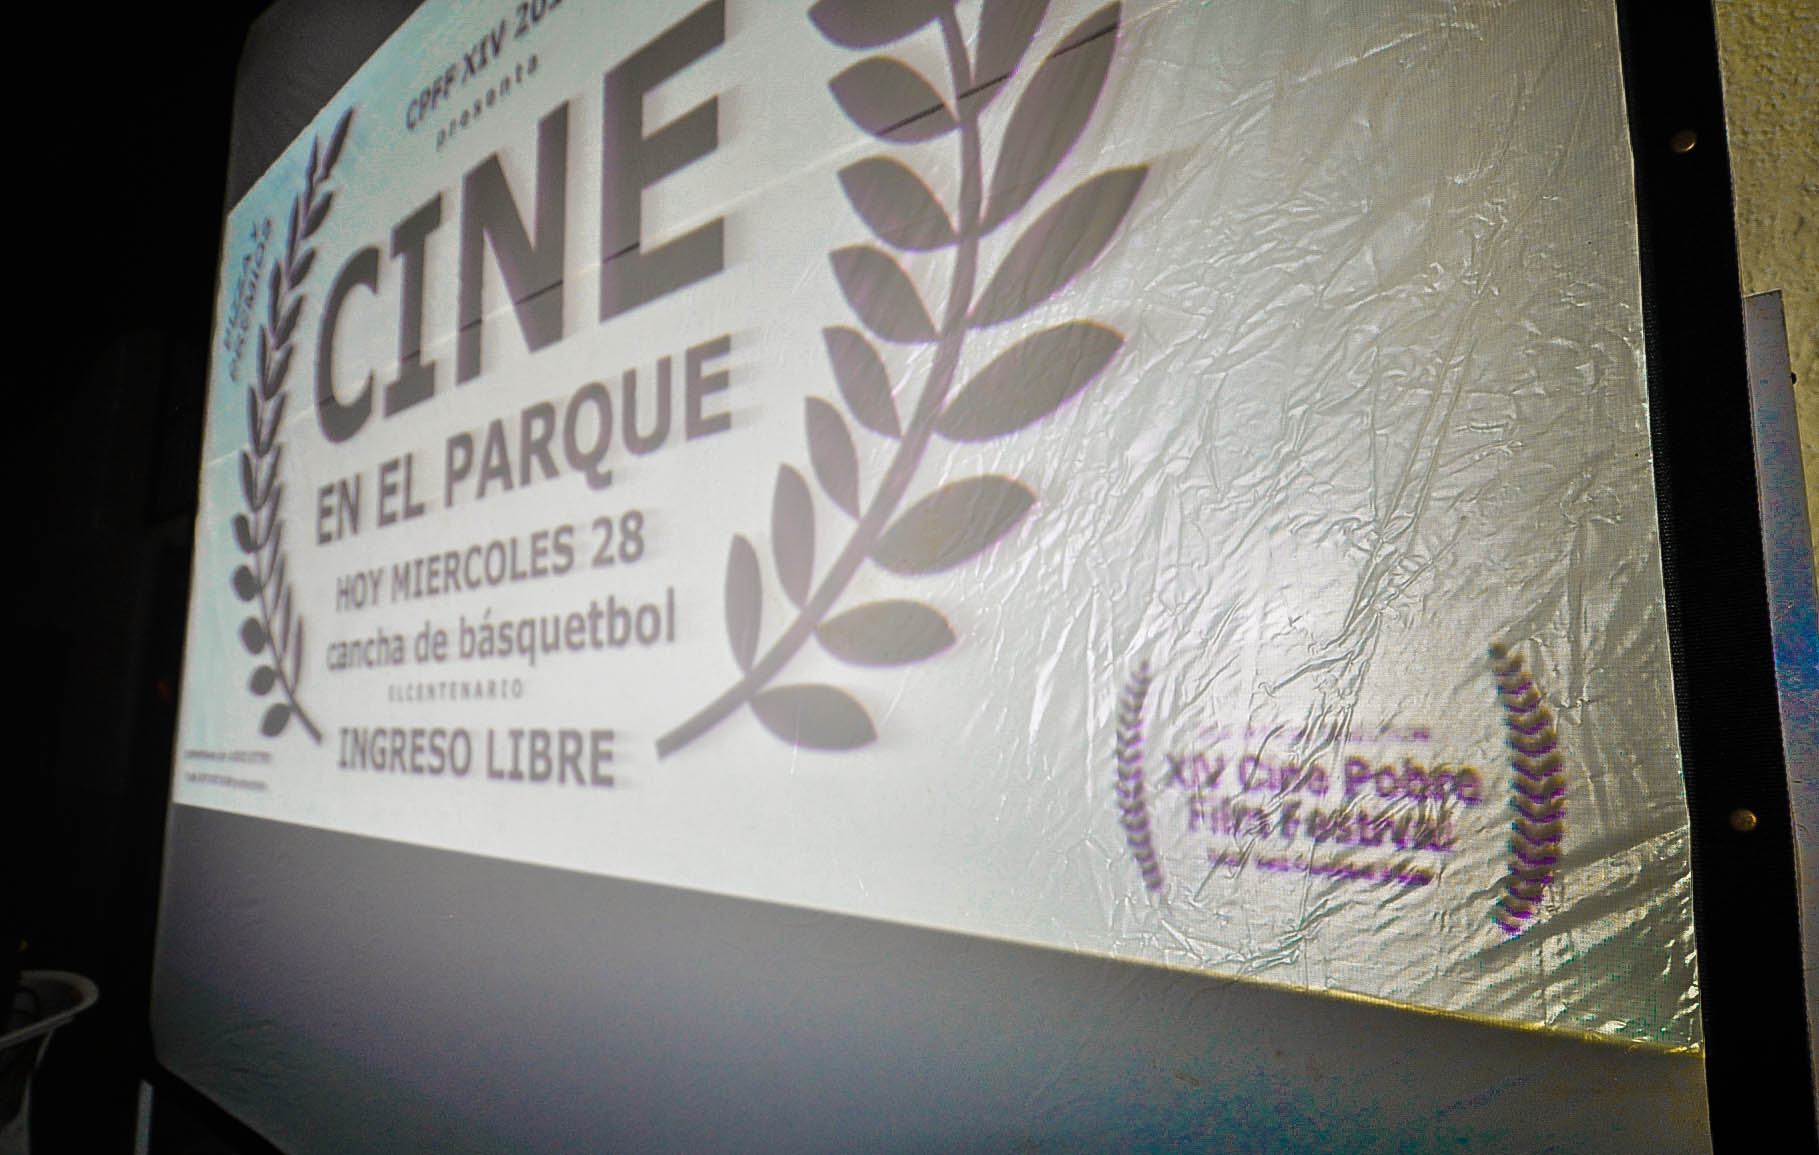 cine pobre screening Dec 28, 2016